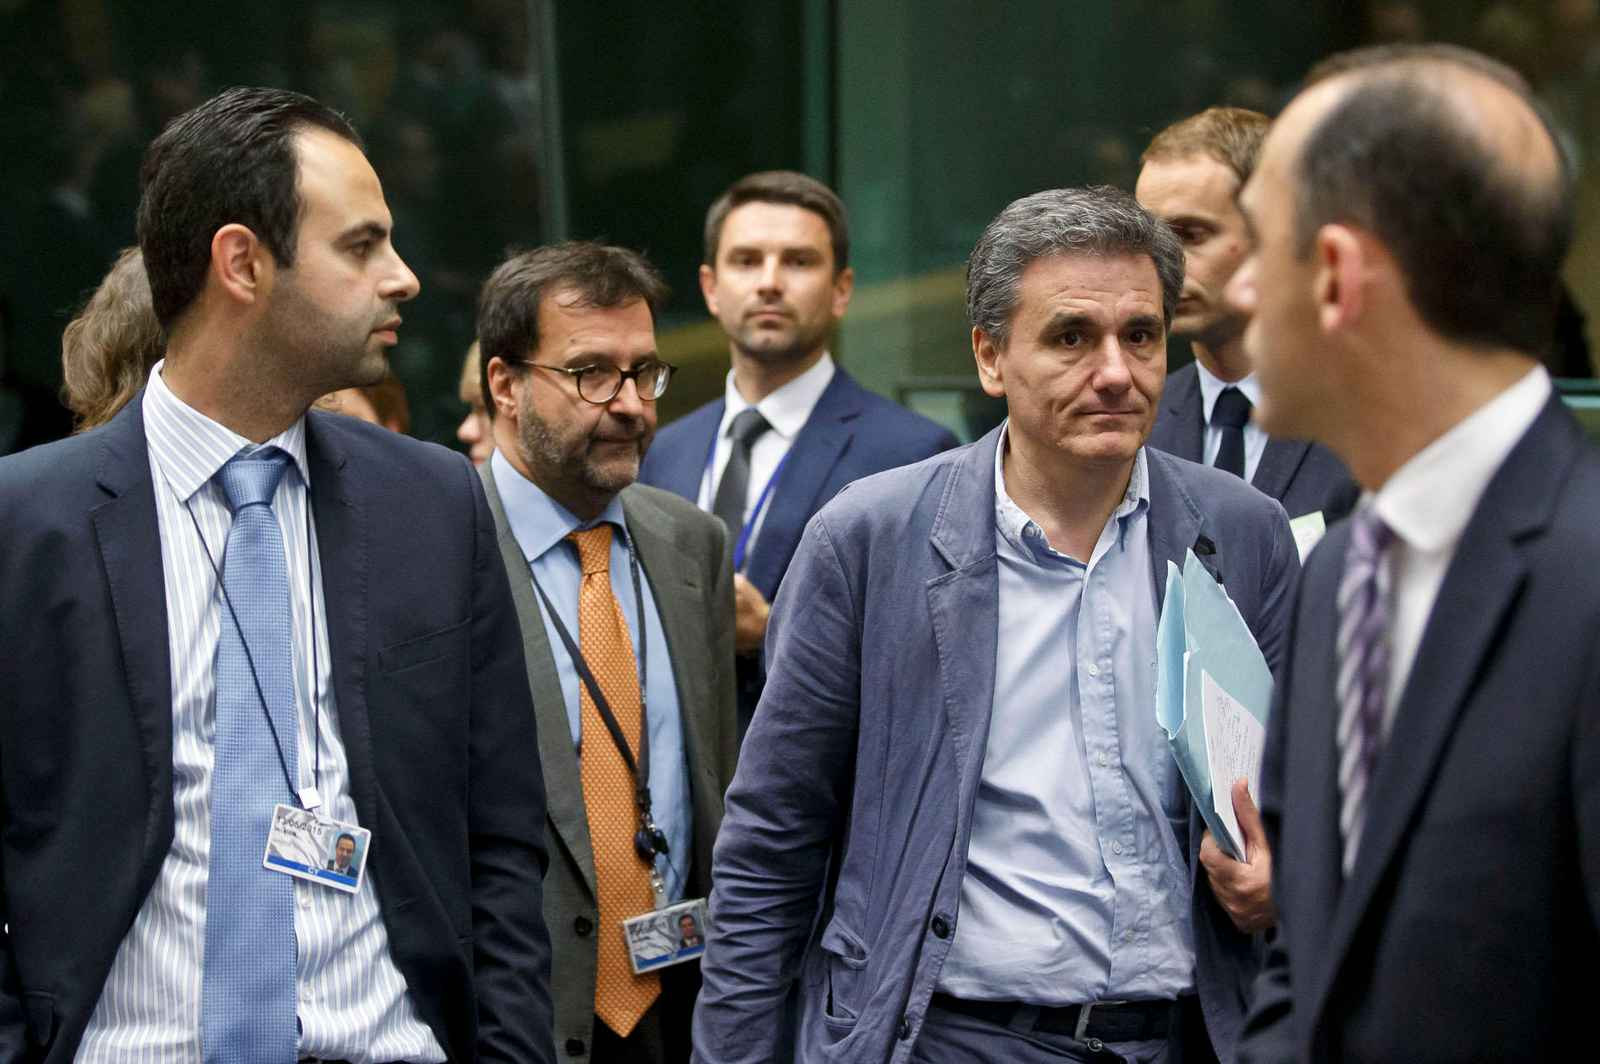 Greek Finance Minister Euclid Tsakalotos, third right, arrives for a round table meeting of eurozone finance ministers at the EU LEX building in Brussels on Tuesday, July 7, 2015. Greek Prime Minister Alexis Tsipras was heading Tuesday to Brussels for an emergency meeting of eurozone leaders, where he will try to use a resounding referendum victory to eke out concessions from European creditors over a bailout for the crisis-ridden country. (AP Photo/Michel Euler)